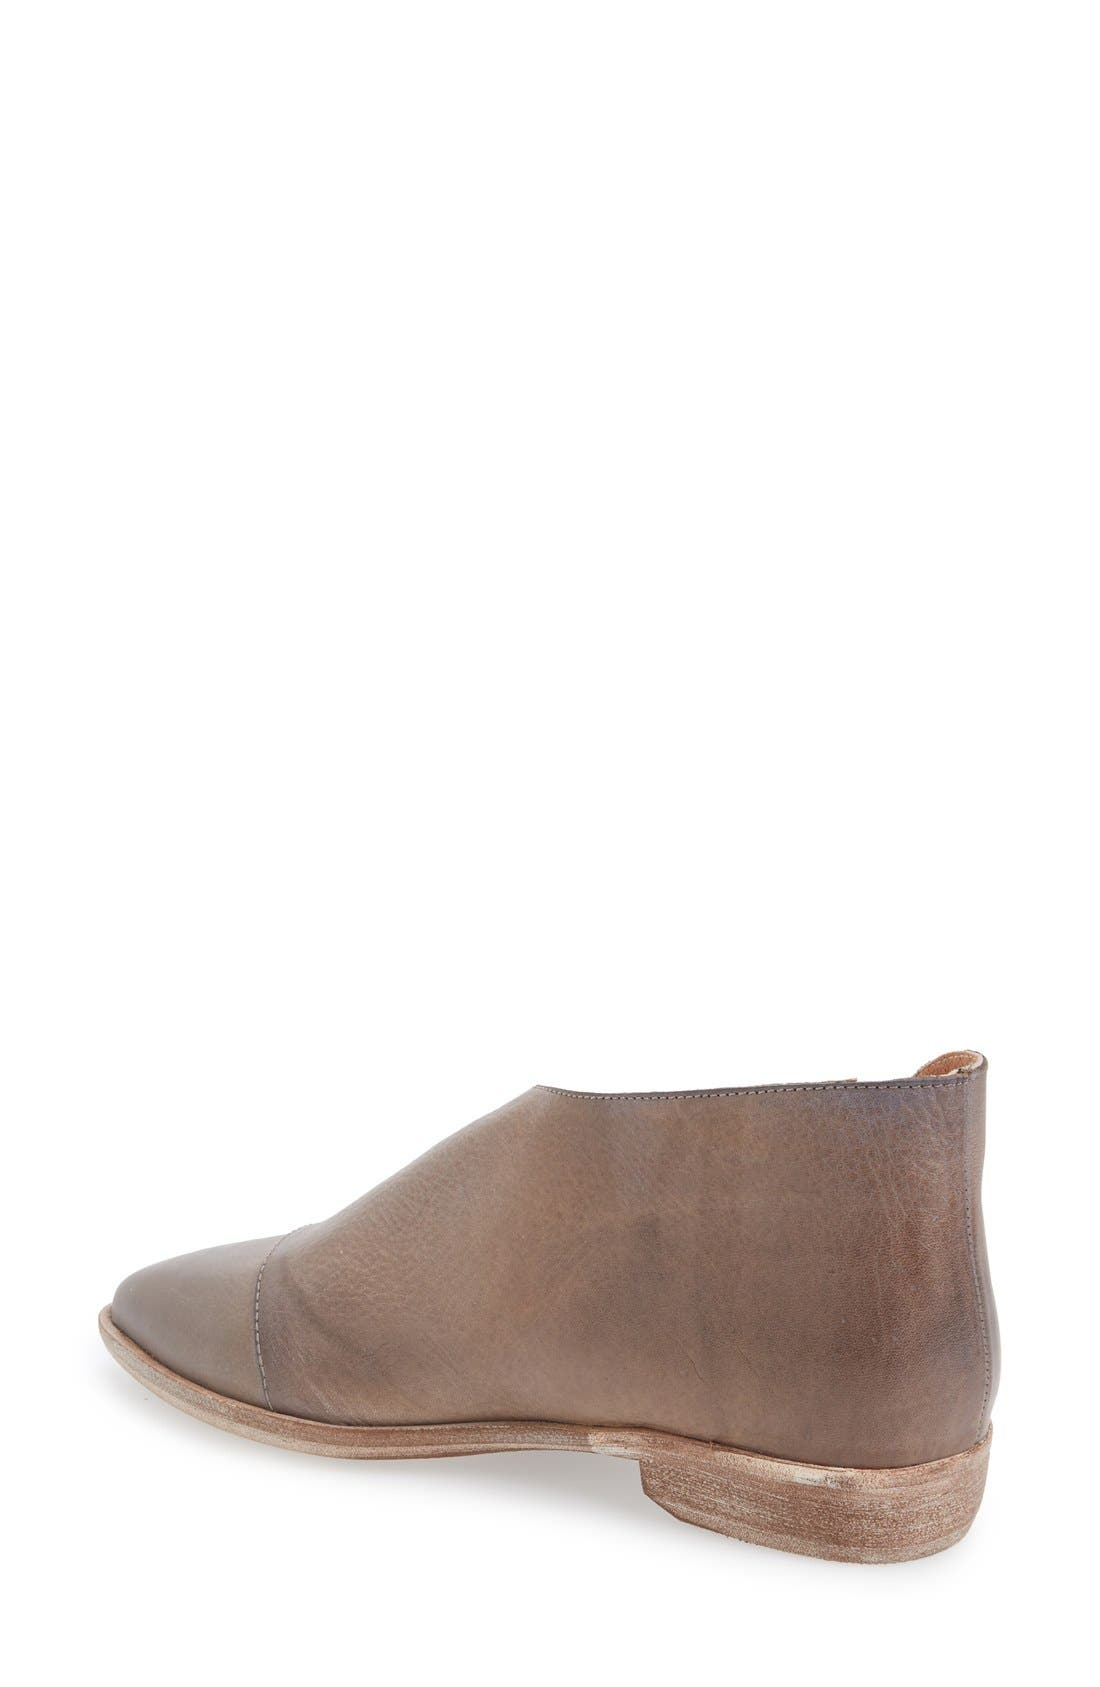 'Royale' Pointy Toe Flat,                             Alternate thumbnail 4, color,                             GREY LEATHER